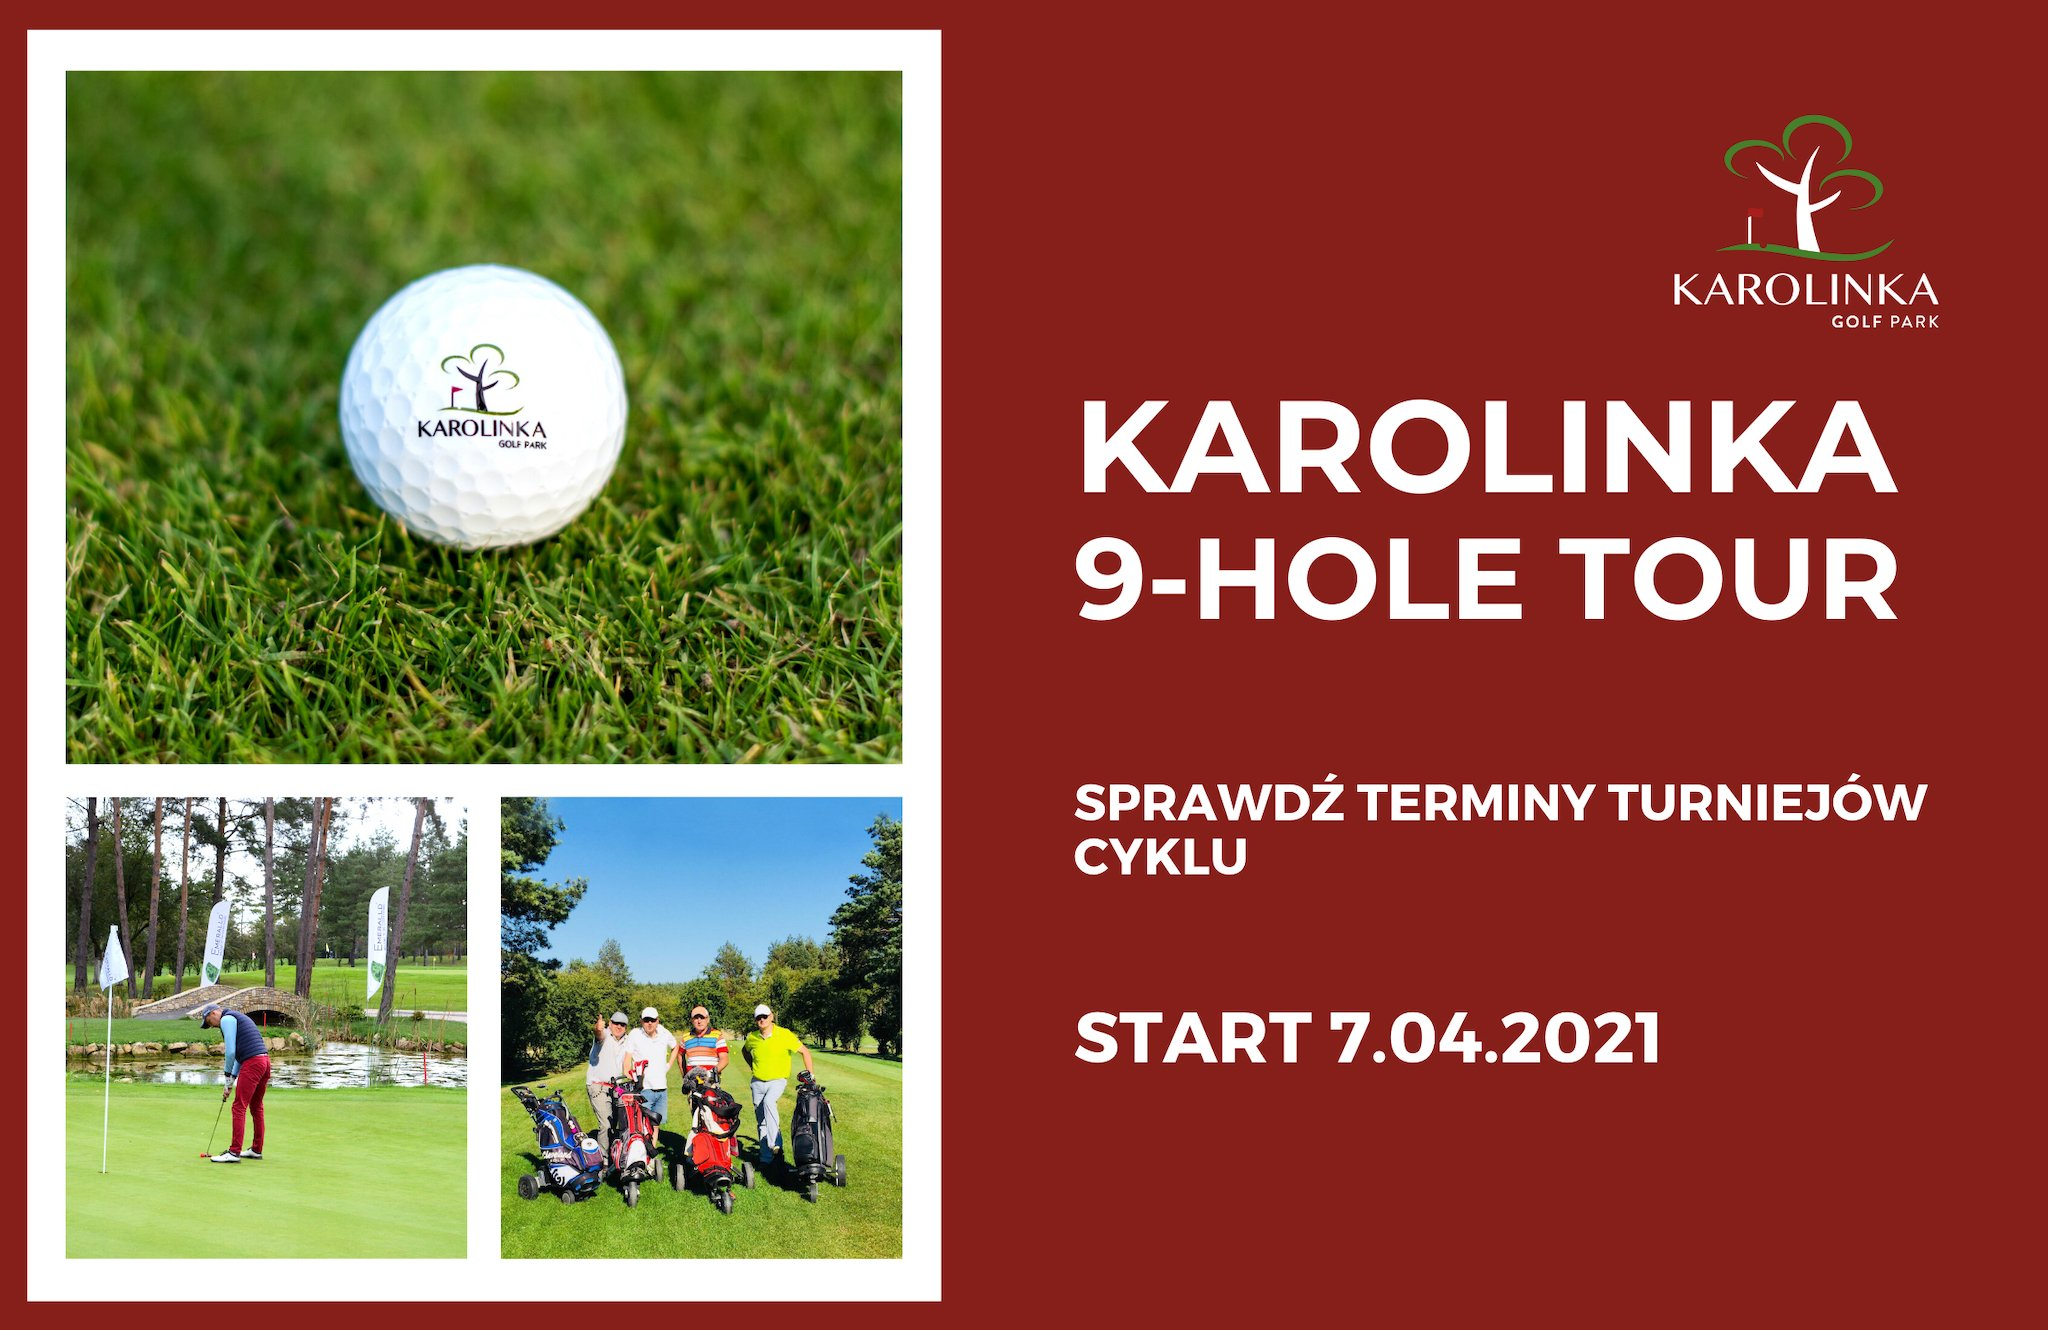 Turnieje Karolinka 9-hole tour